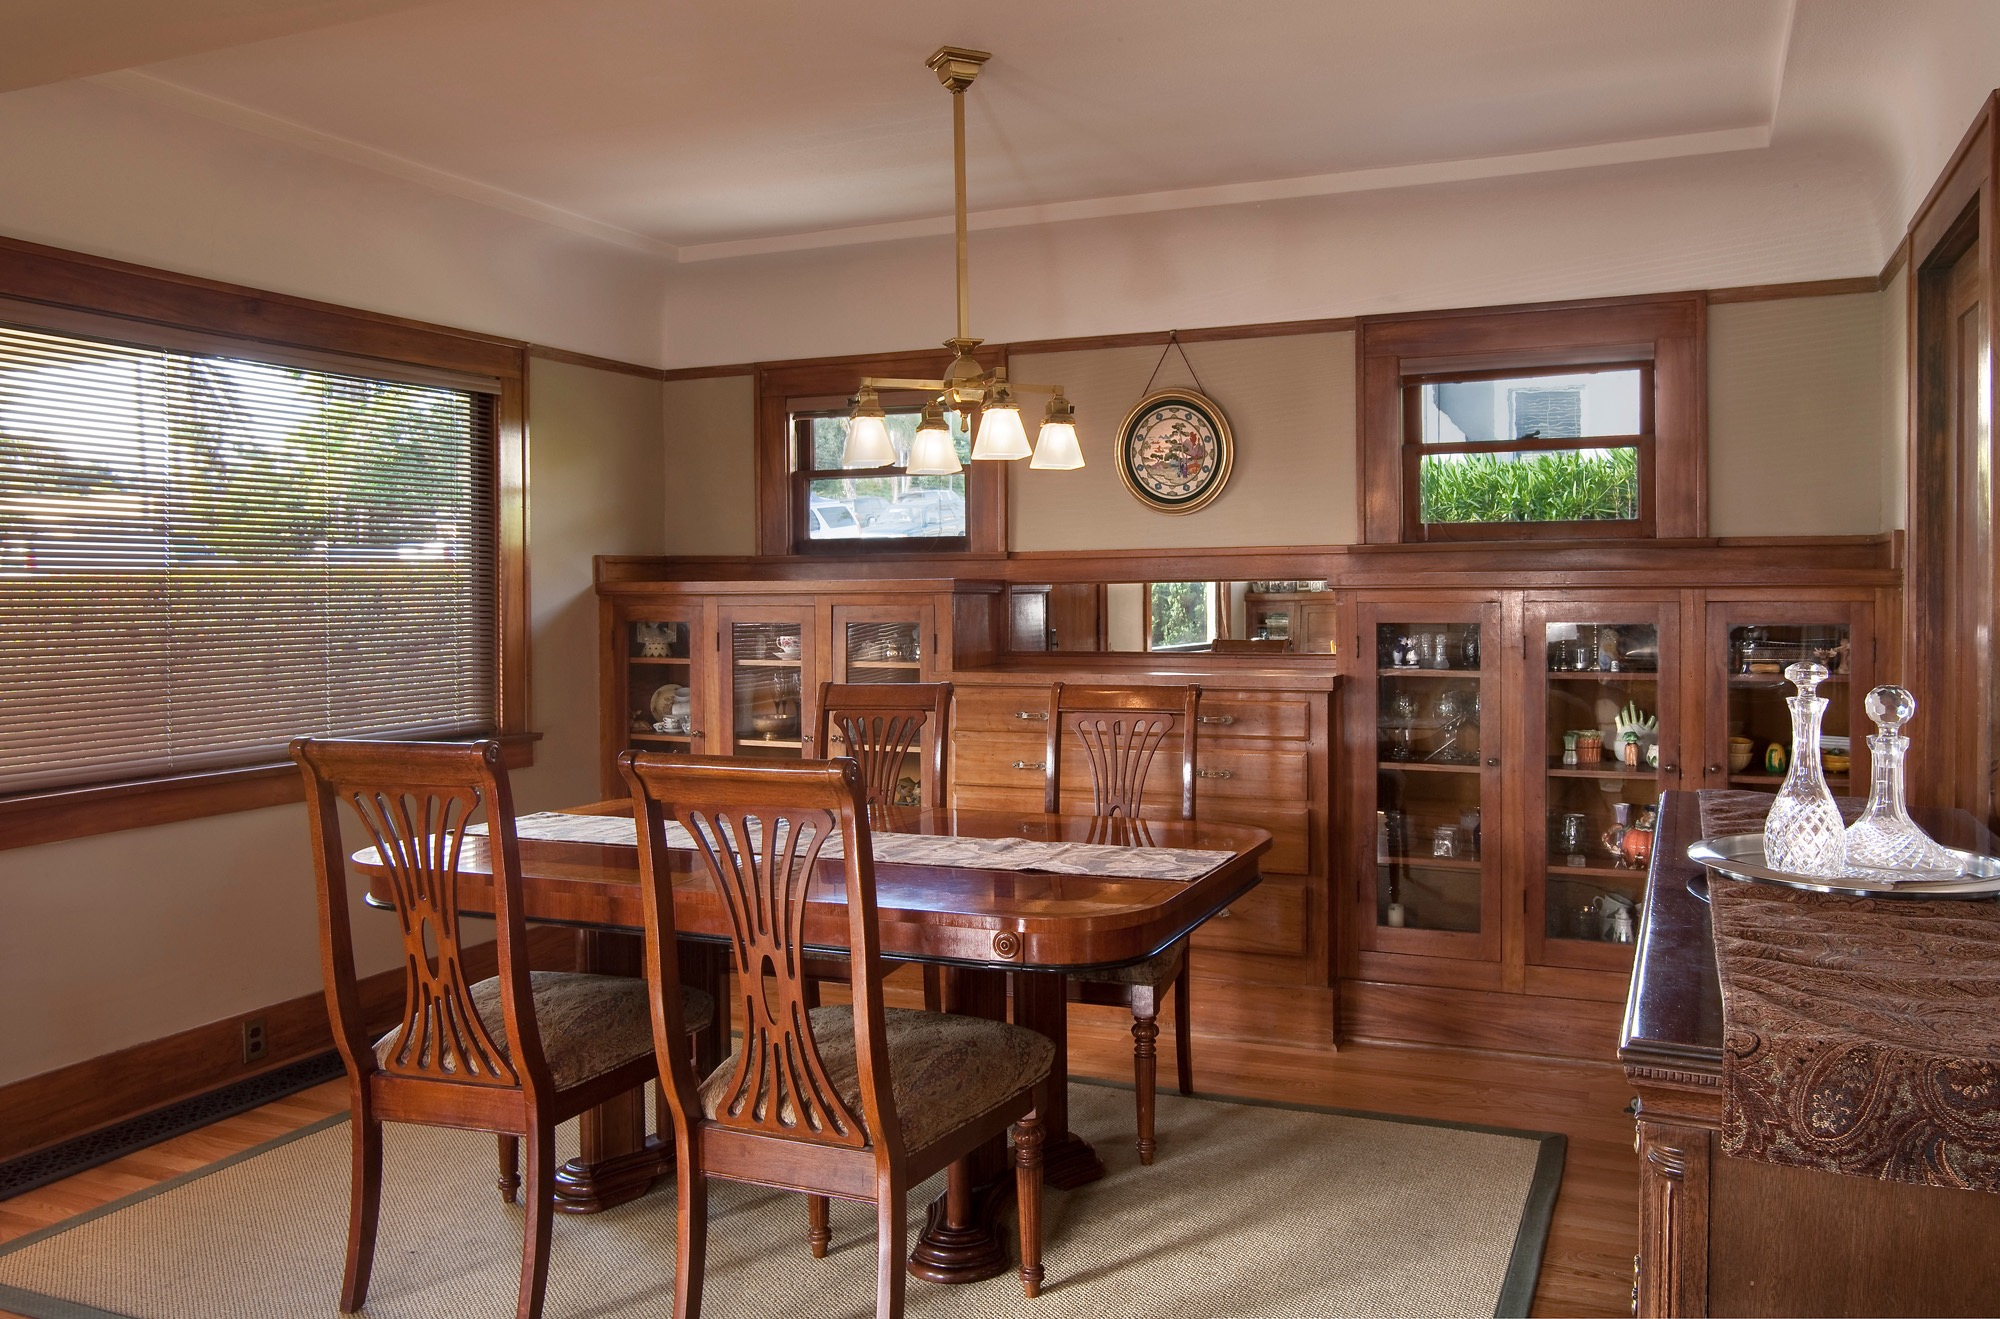 Classic Wooden Craftsman Dining Room With Built In Cabinets (Image 2 of 32)